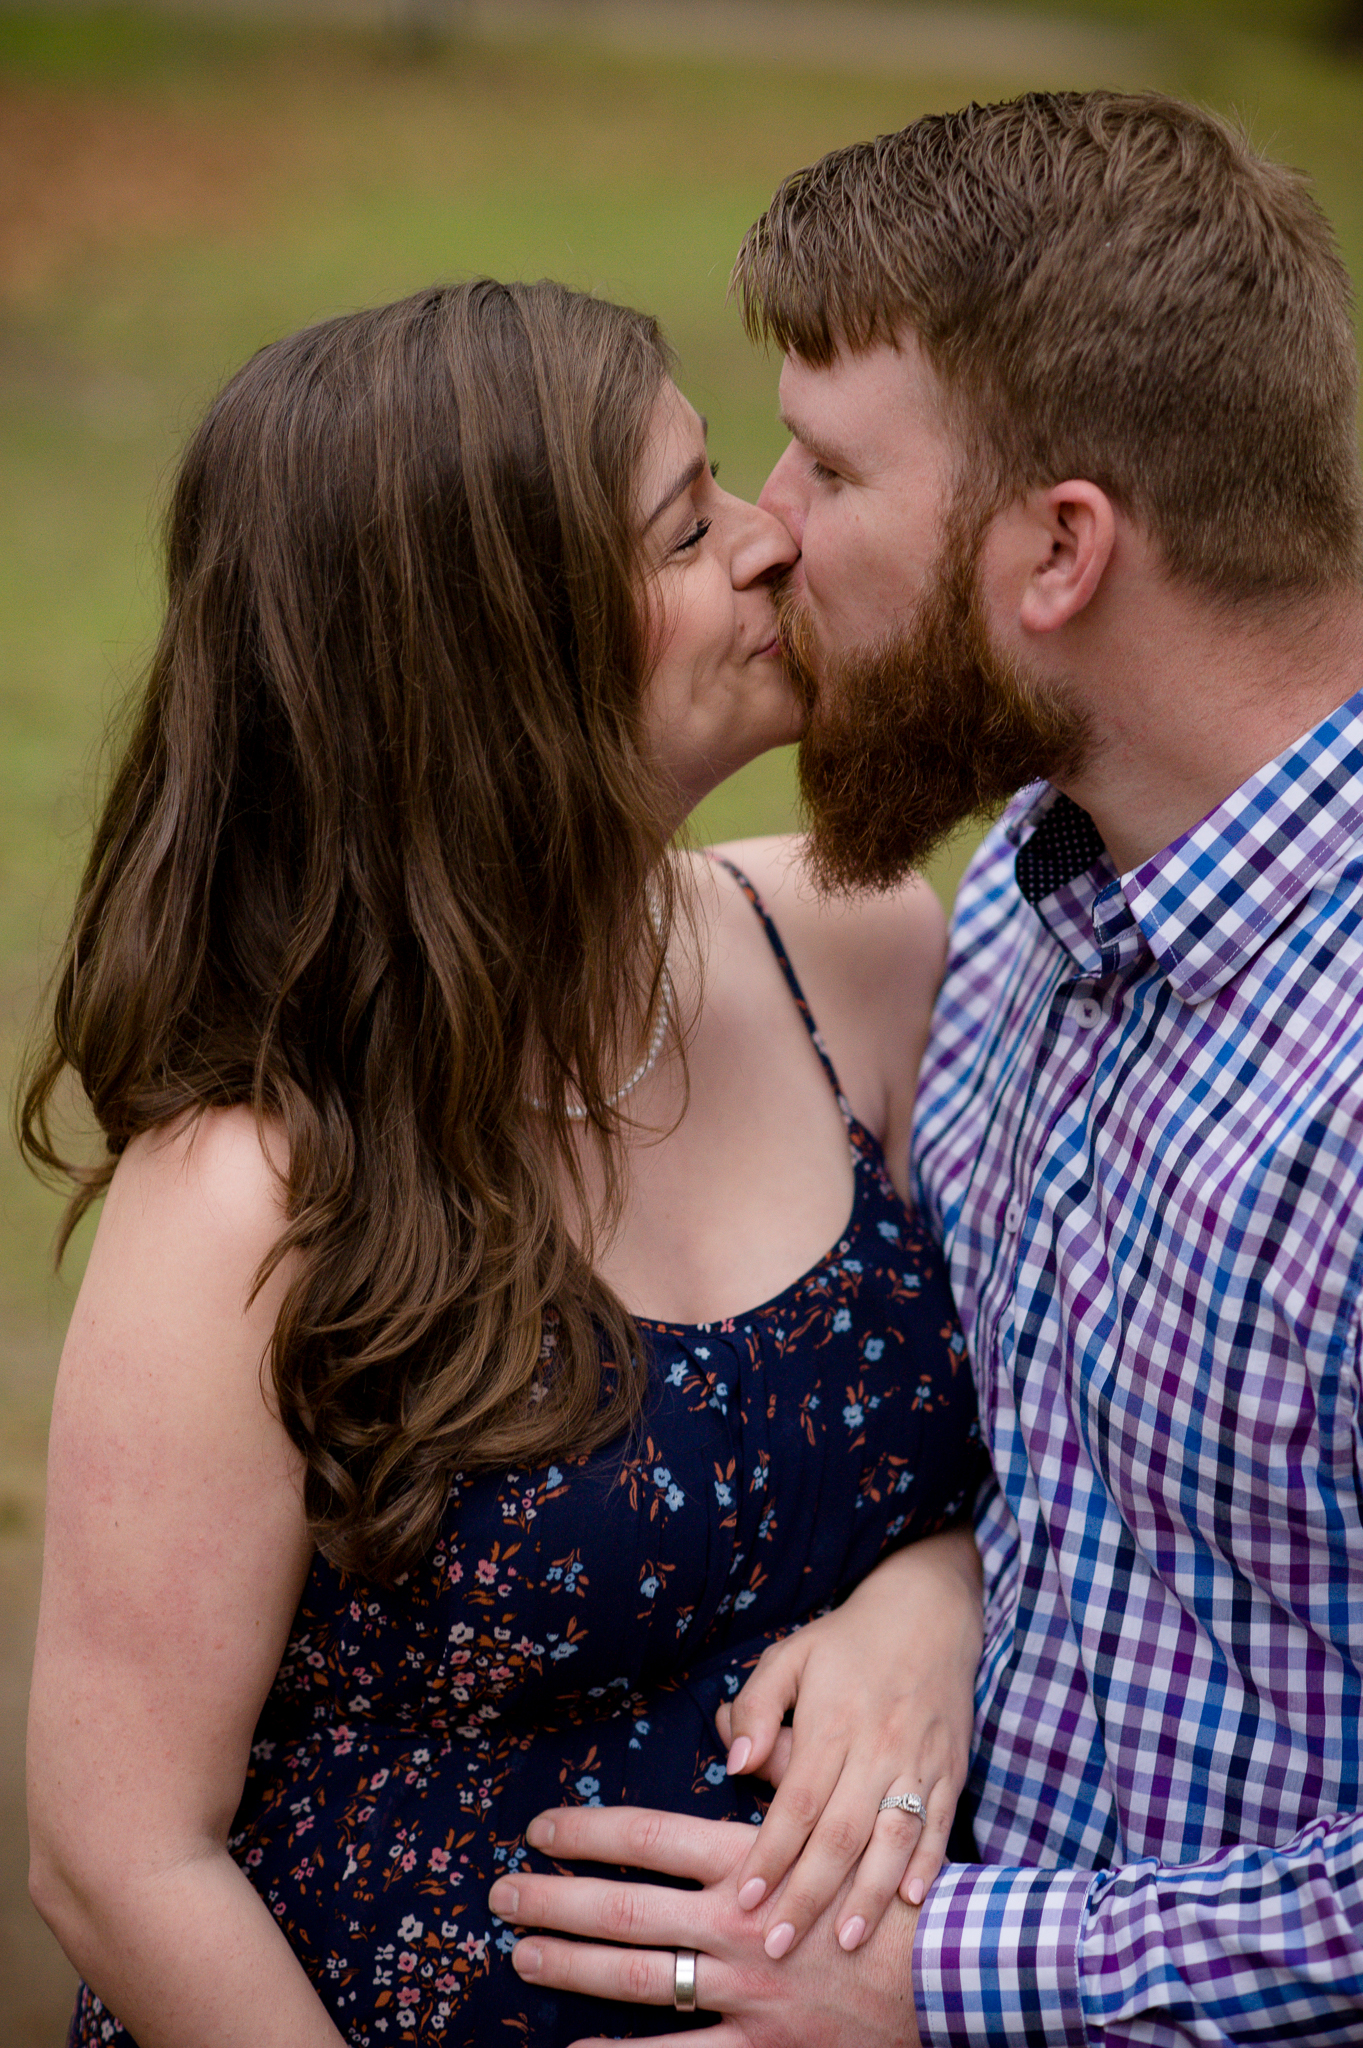 beaufort-south-carolina-maternity-portraits-2552.JPG